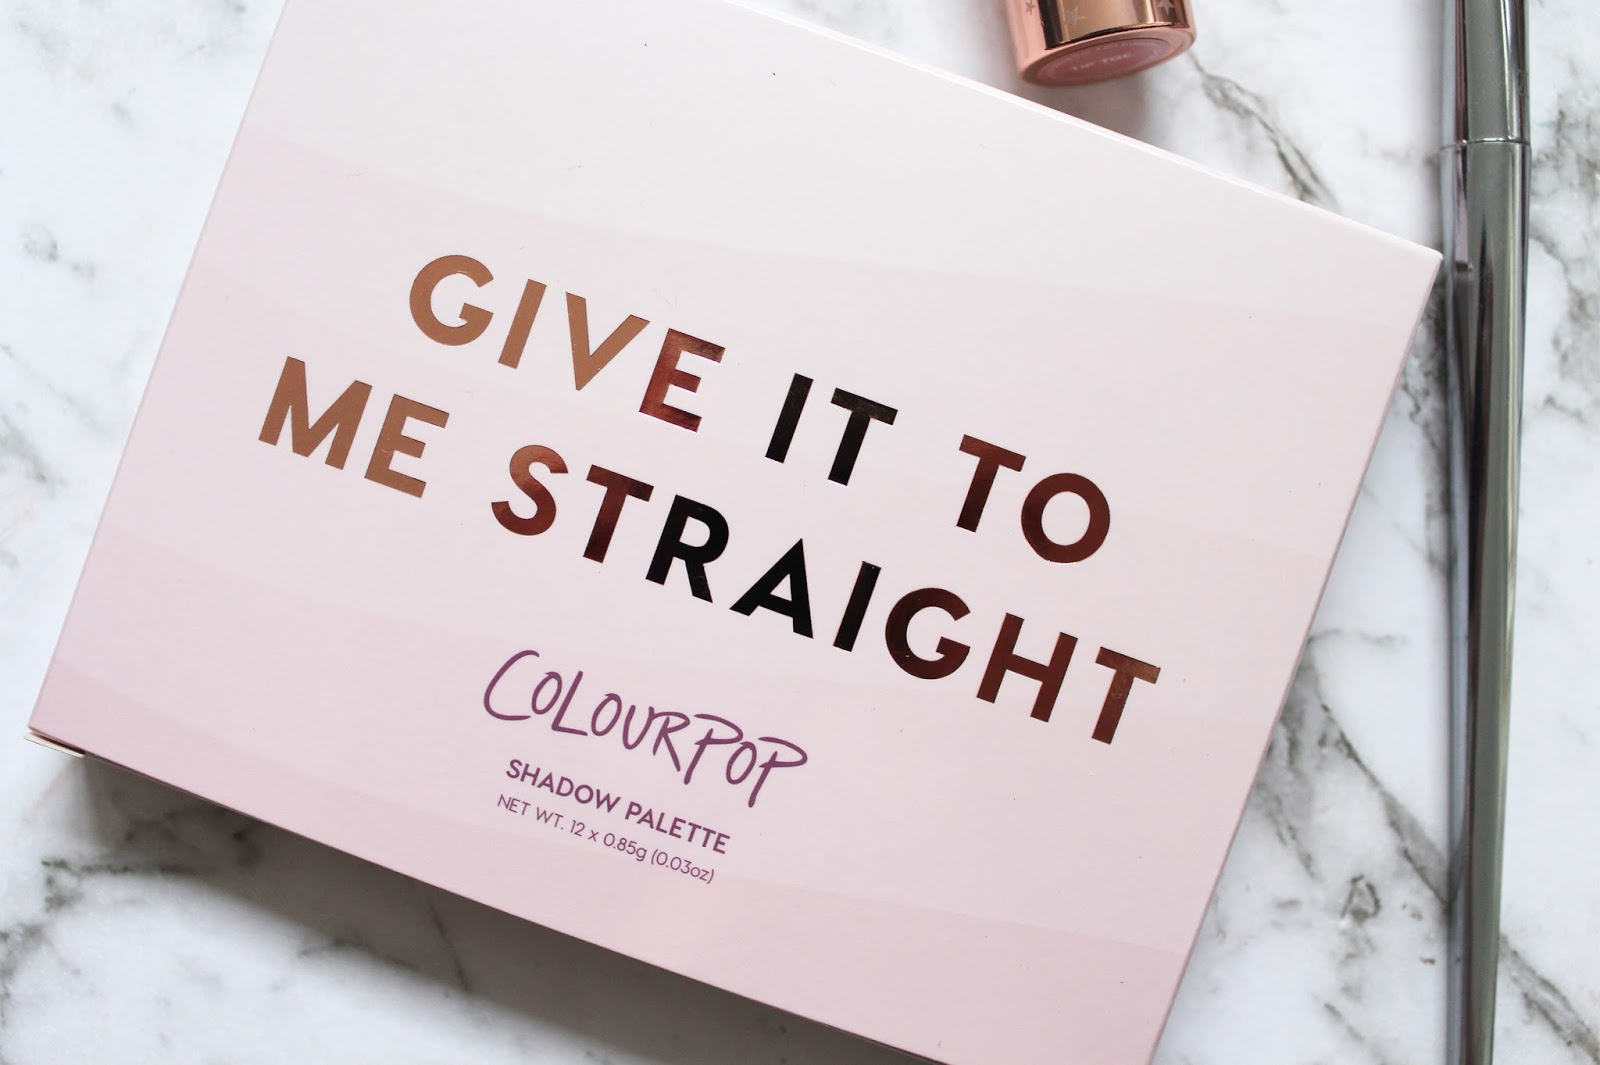 COLOURPOP | Give It To Me Straight Shadow Palette - Review + Swatches - CassandraMyee